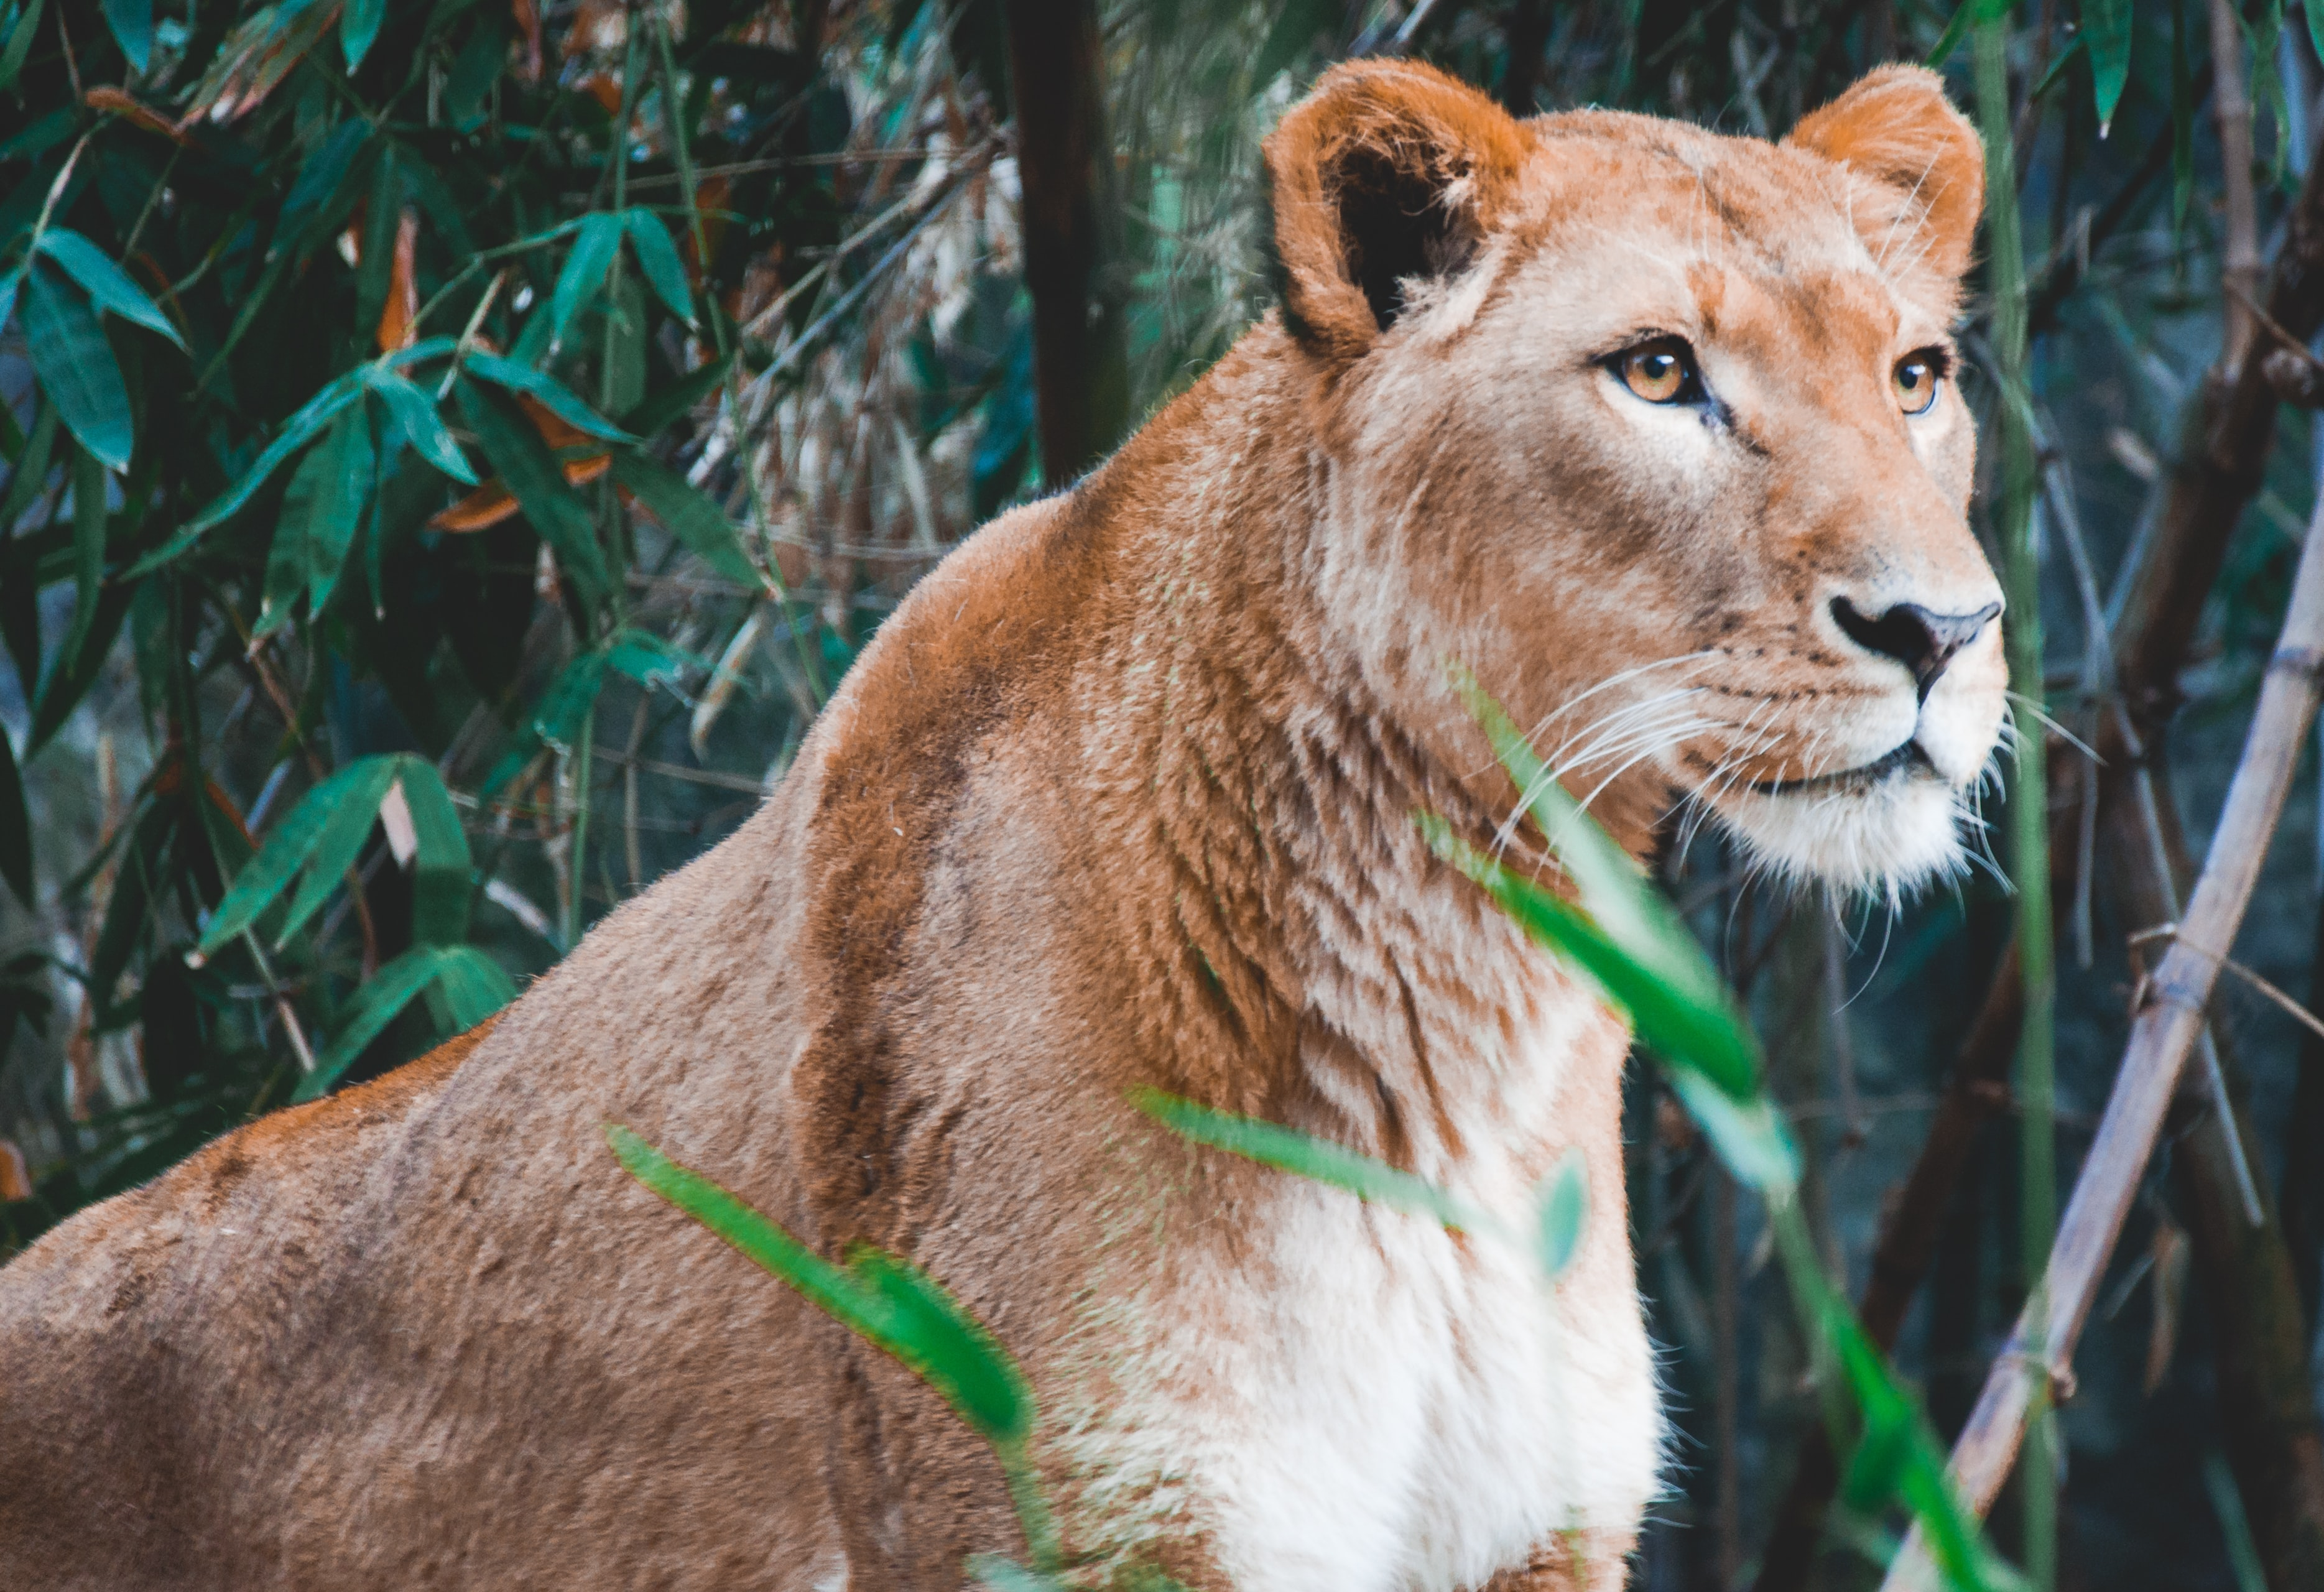 Female lion lioness in the wild near trees with green leaves